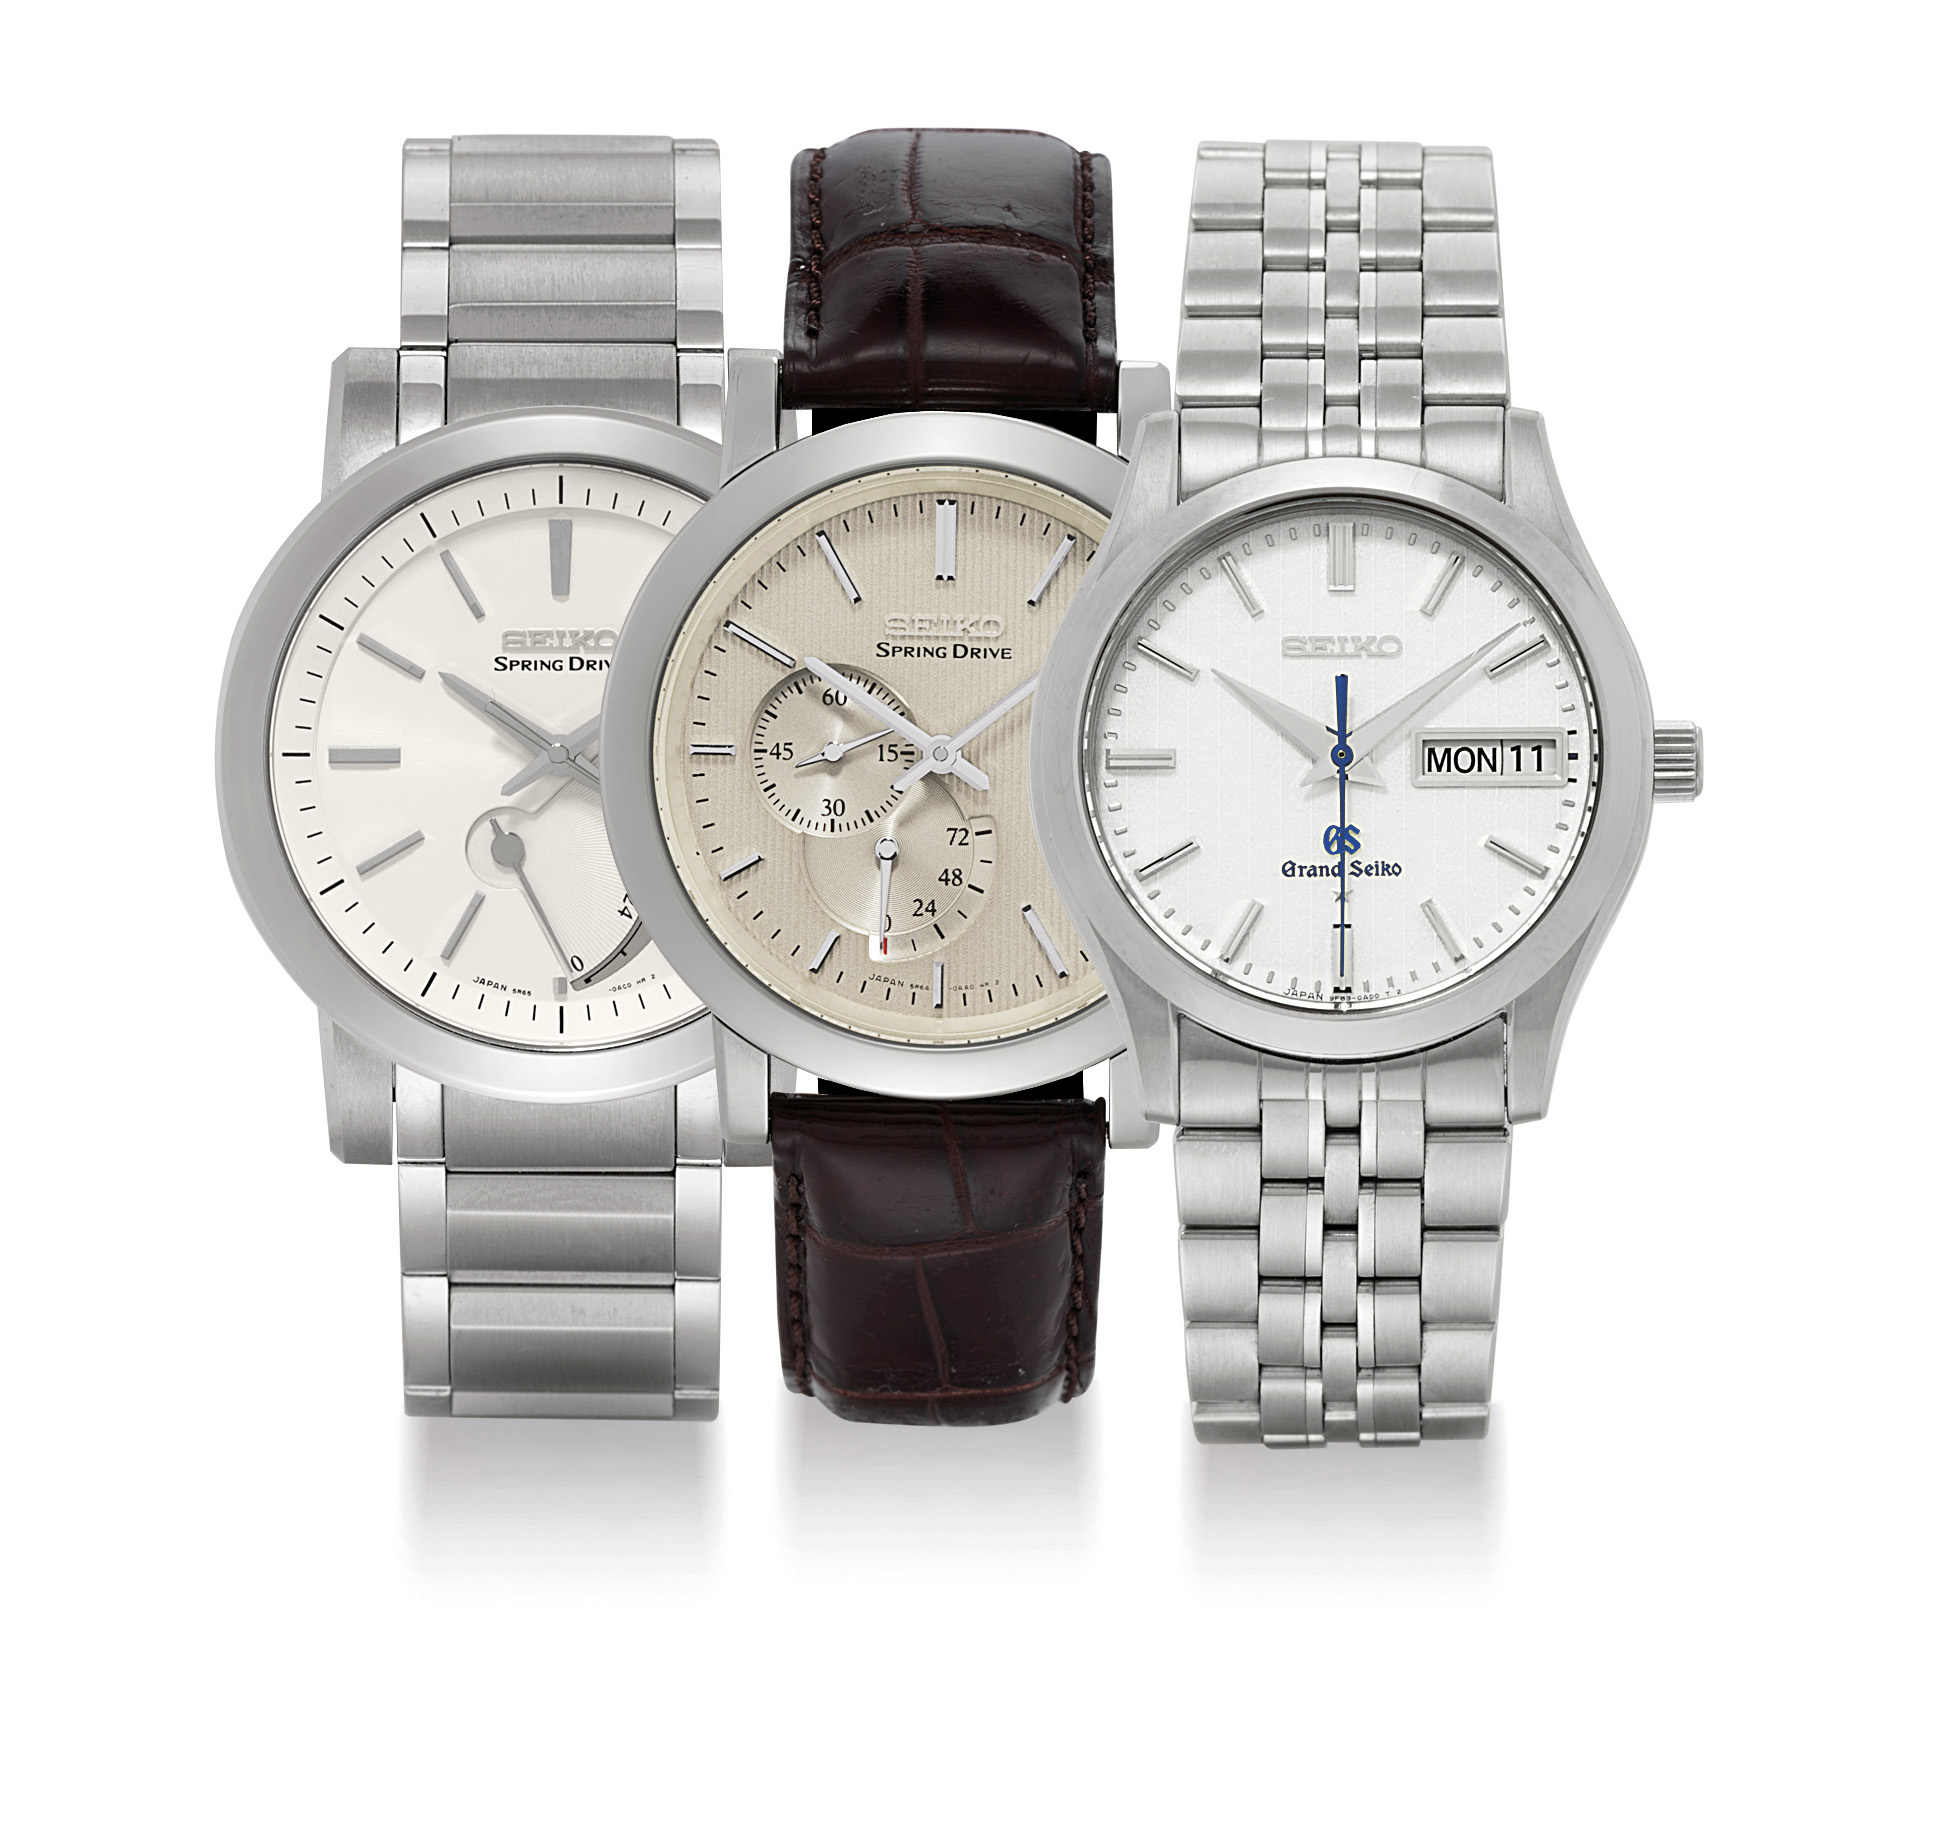 SEIKO. A LOT OF THREE STAINLESS STEEL WRISTWATCHES